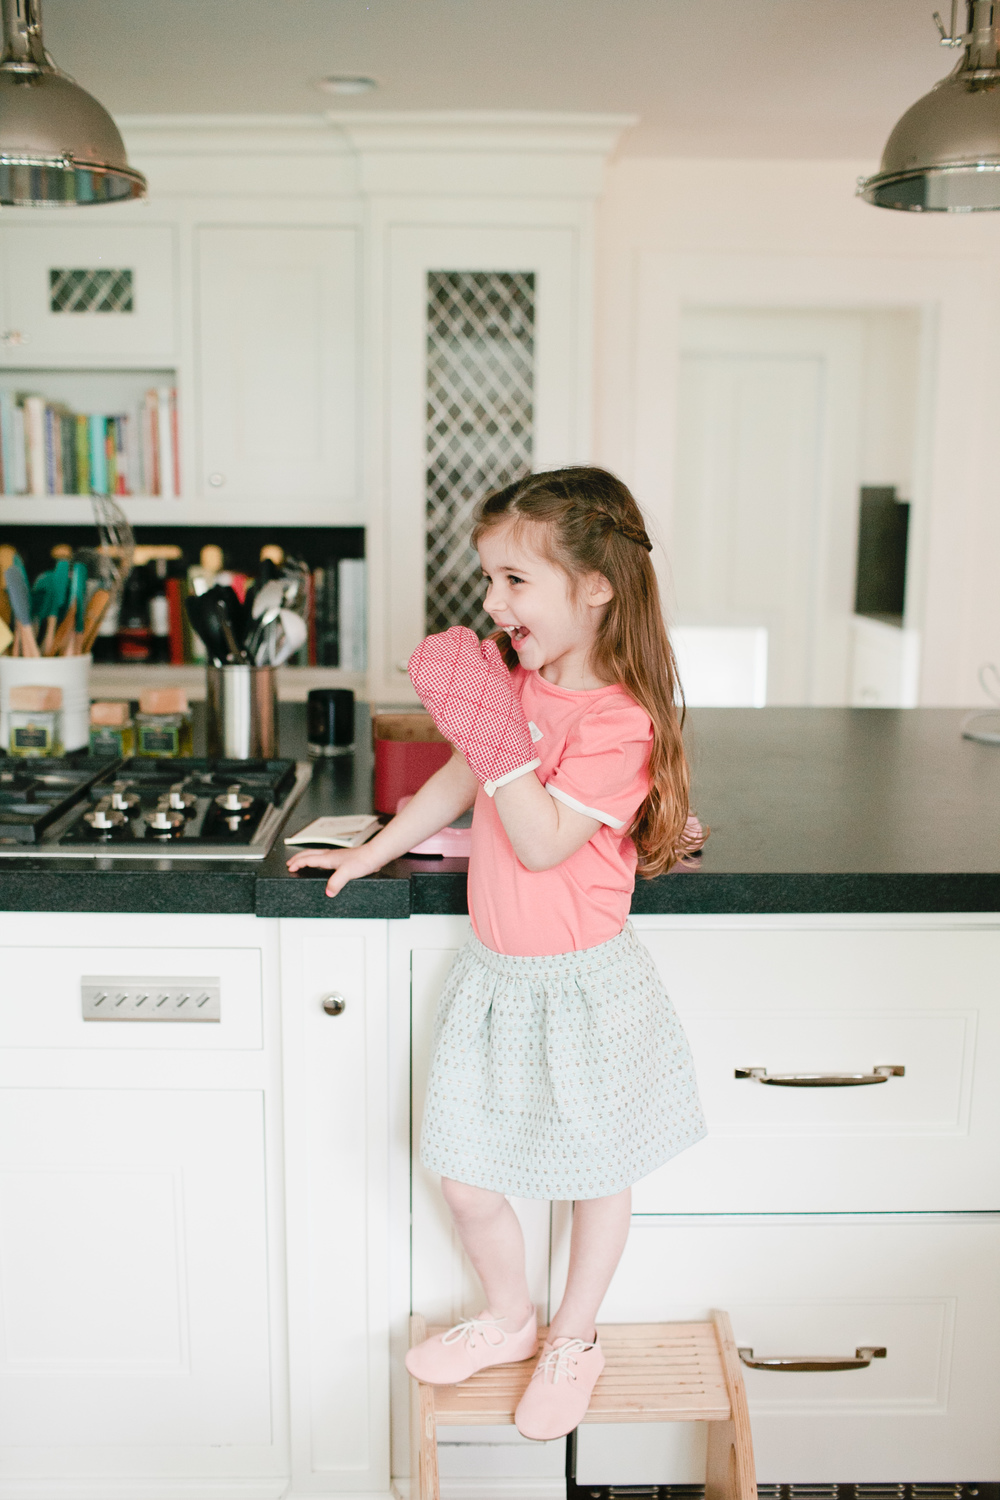 Top: Ode to Jeune. Skirt: Mimosa Kids. Shoes: Zuzii.